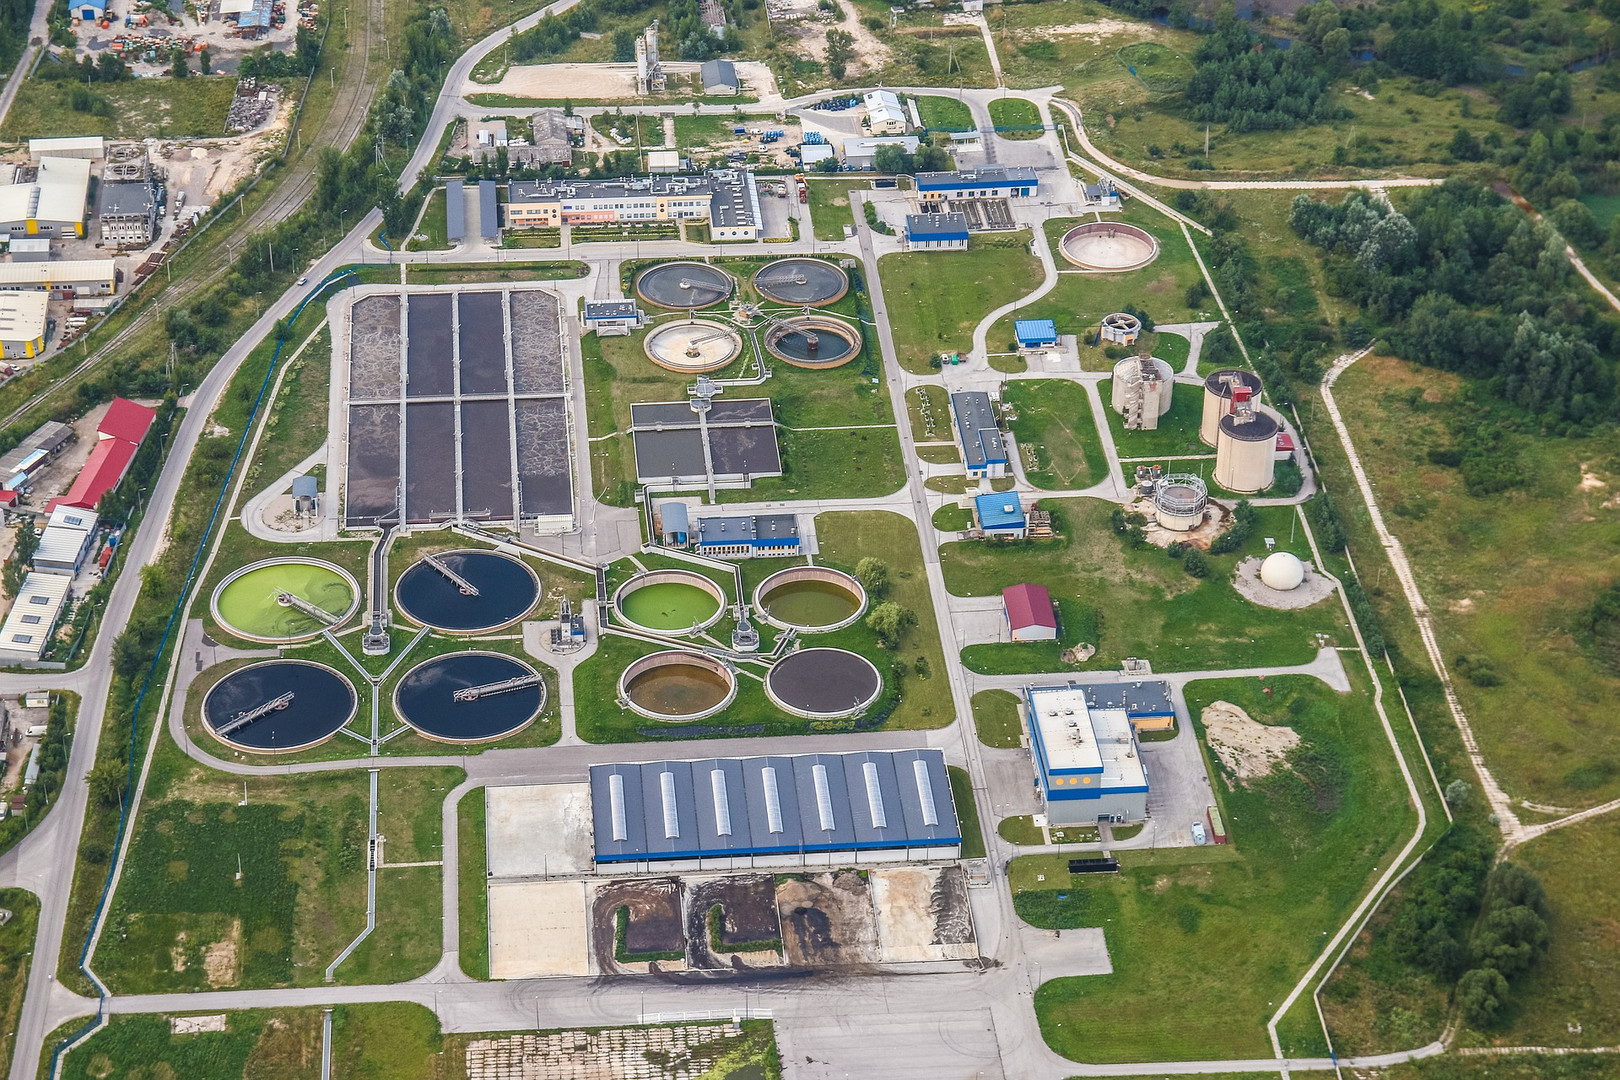 treatment-plant-wastewater-2826988_1920.